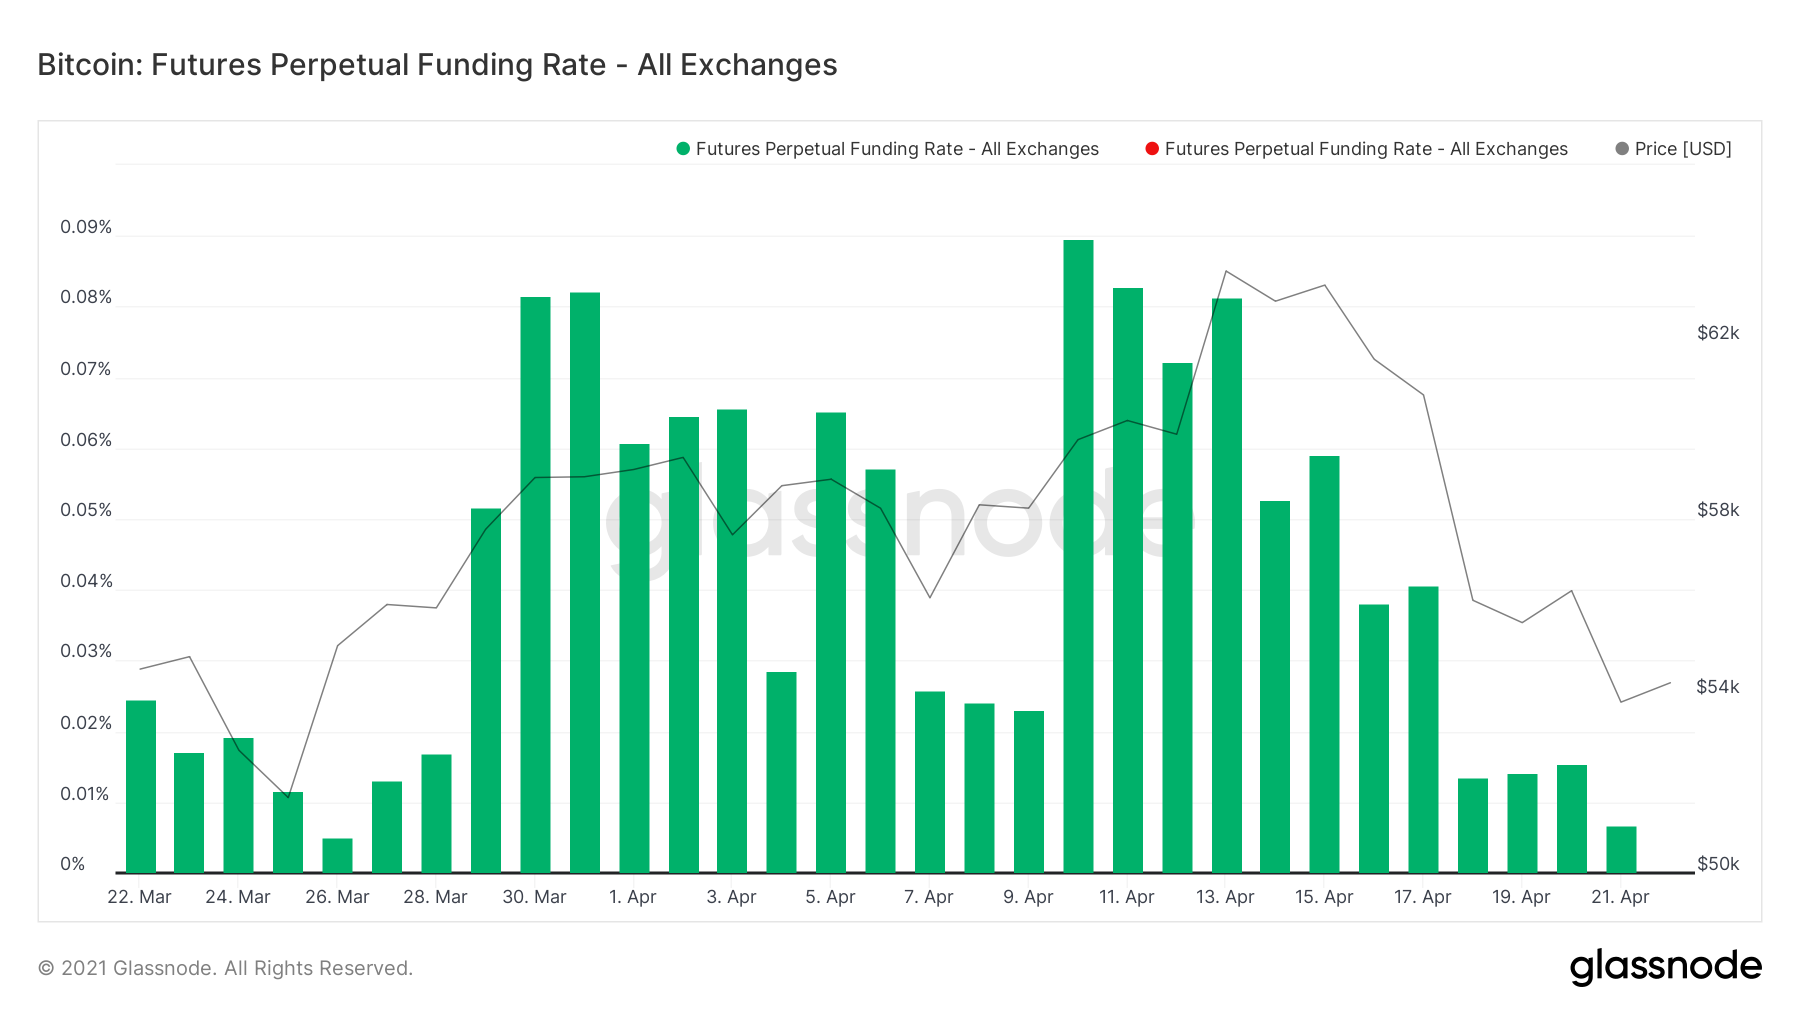 Funding Rate